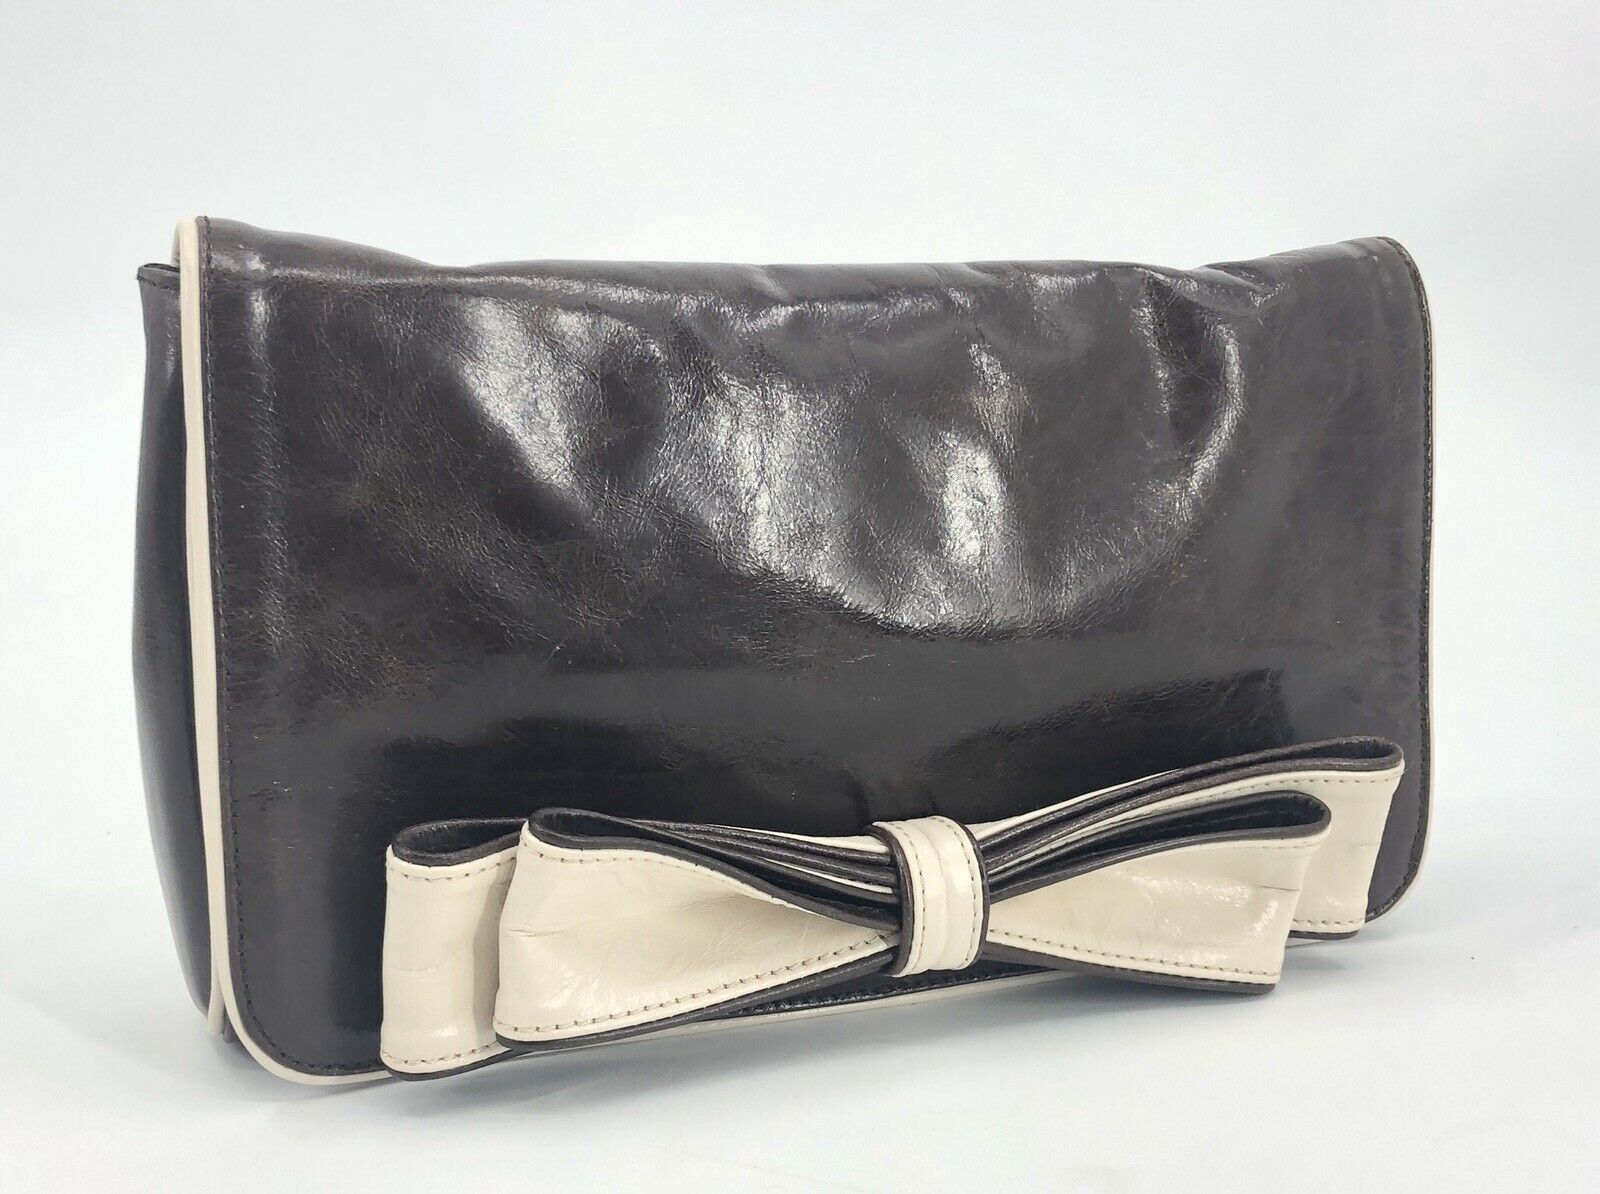 Steven by Steve Madden Brown Leather Clutch Purse Cream Bow Tie Evening Dressy